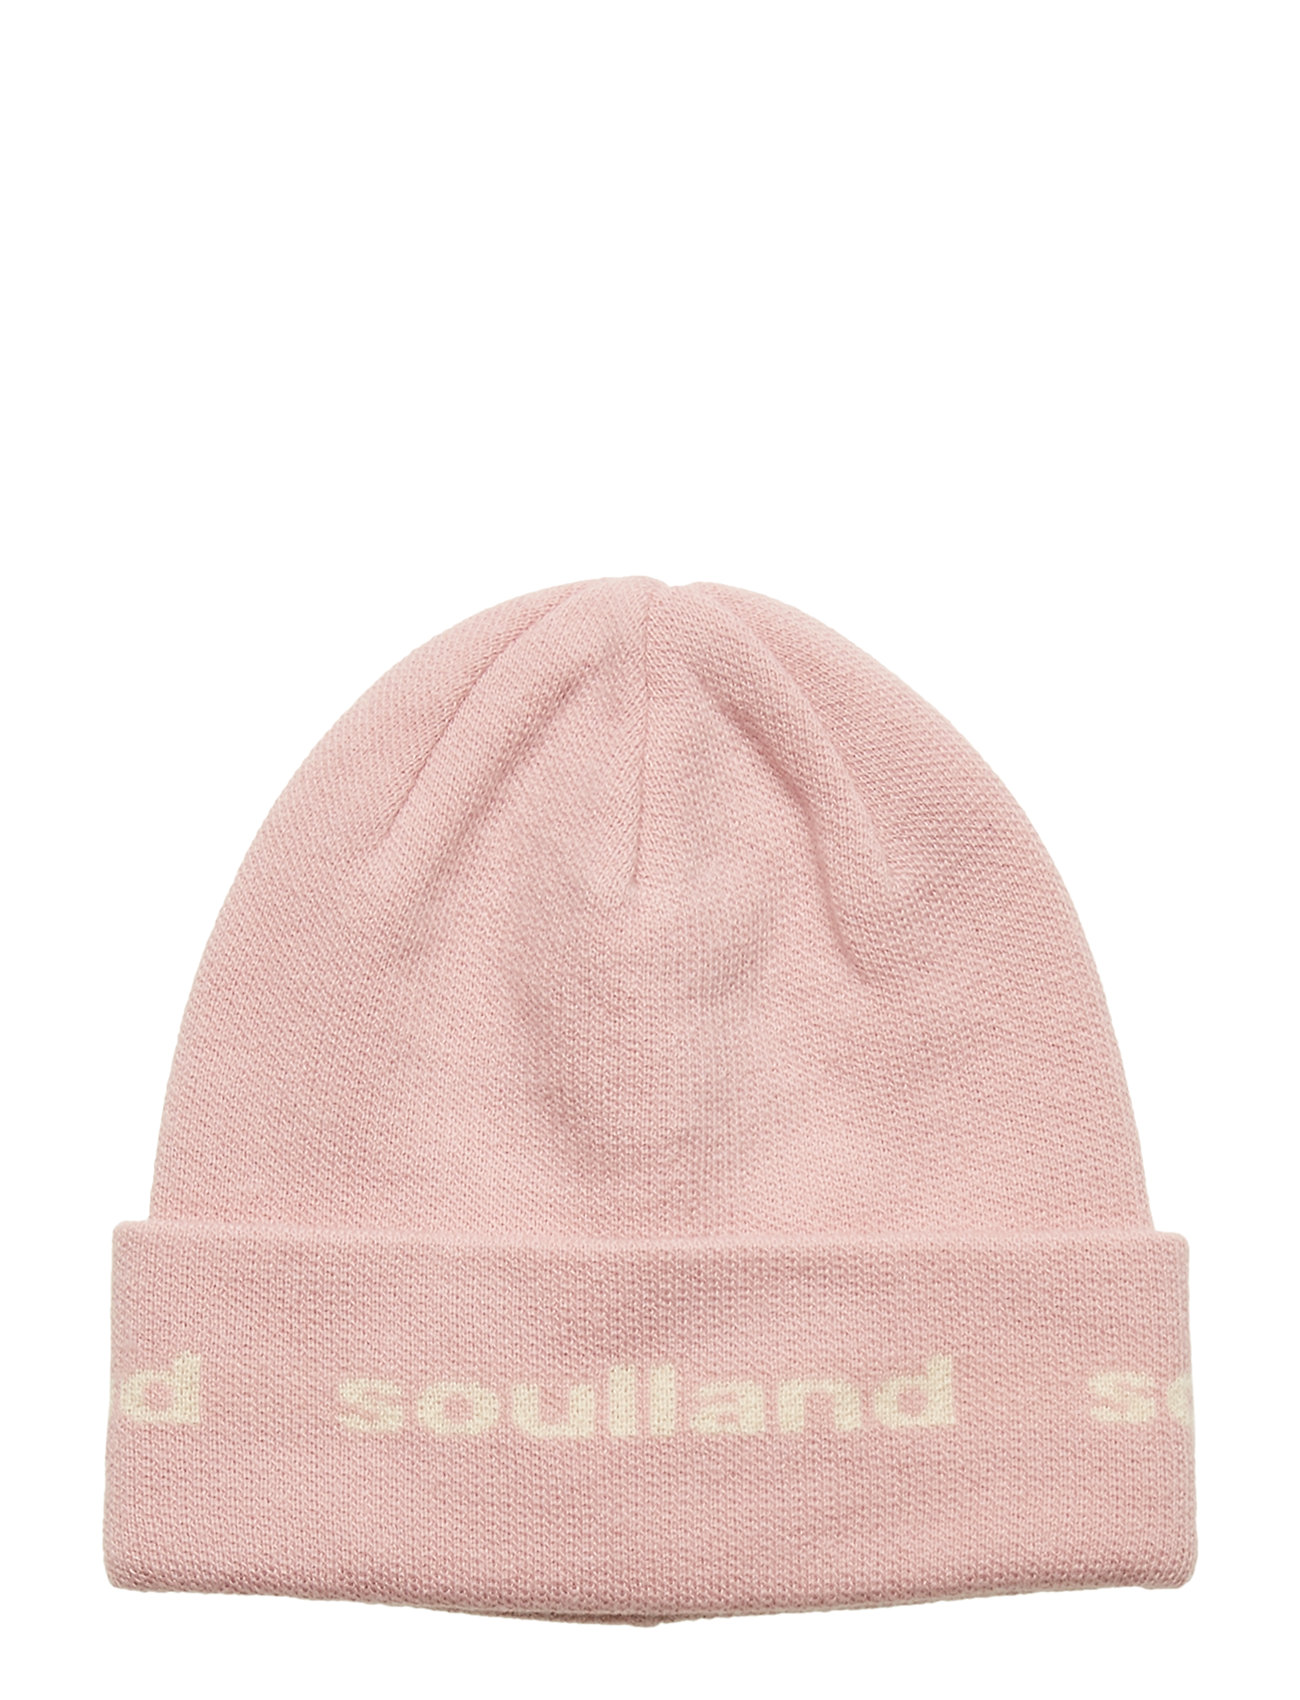 Soulland YOUNGBANG RECYCLE BEANIE - PINK